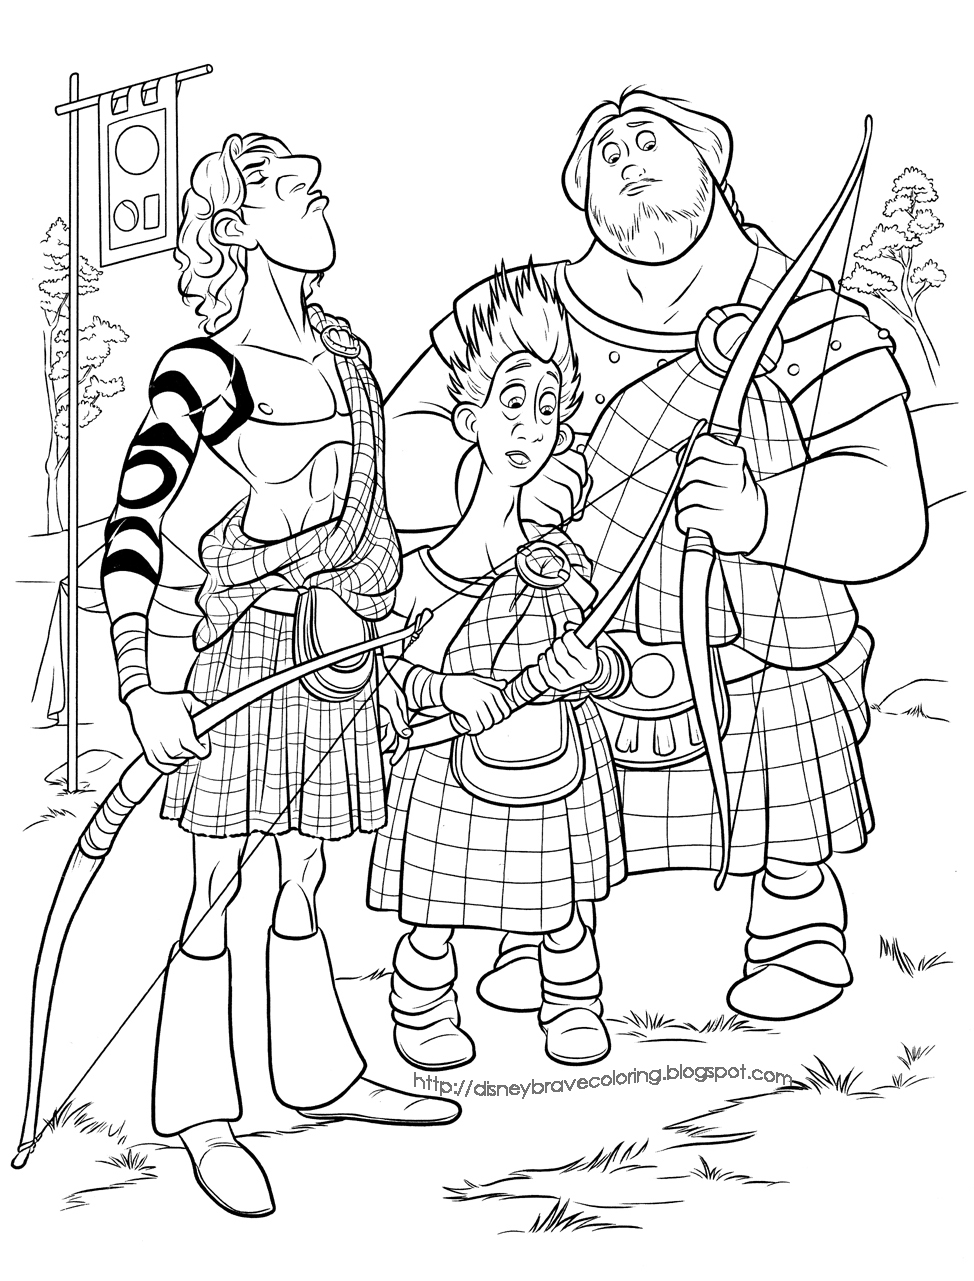 pixar brave coloring pages | BRAVE MERIDA COLORING PAGES